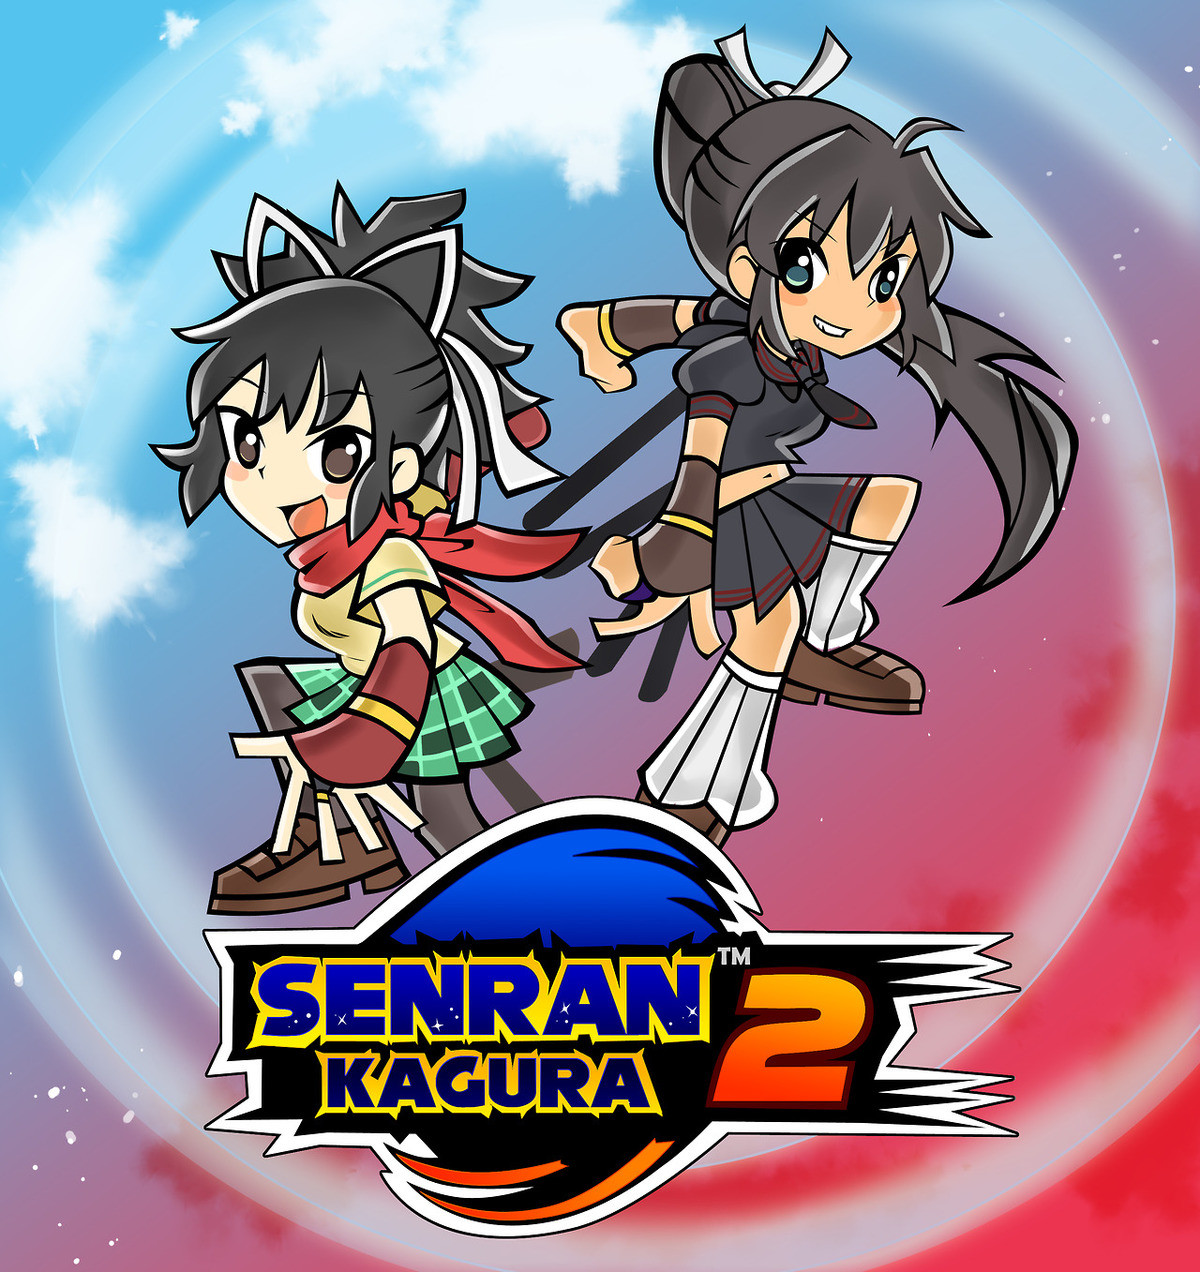 SENRAN KAGURA SEASON 2!?. Out now join list: AniNews (34 subs)Mention History join list:. Yumi is best girl. Gessen for life.